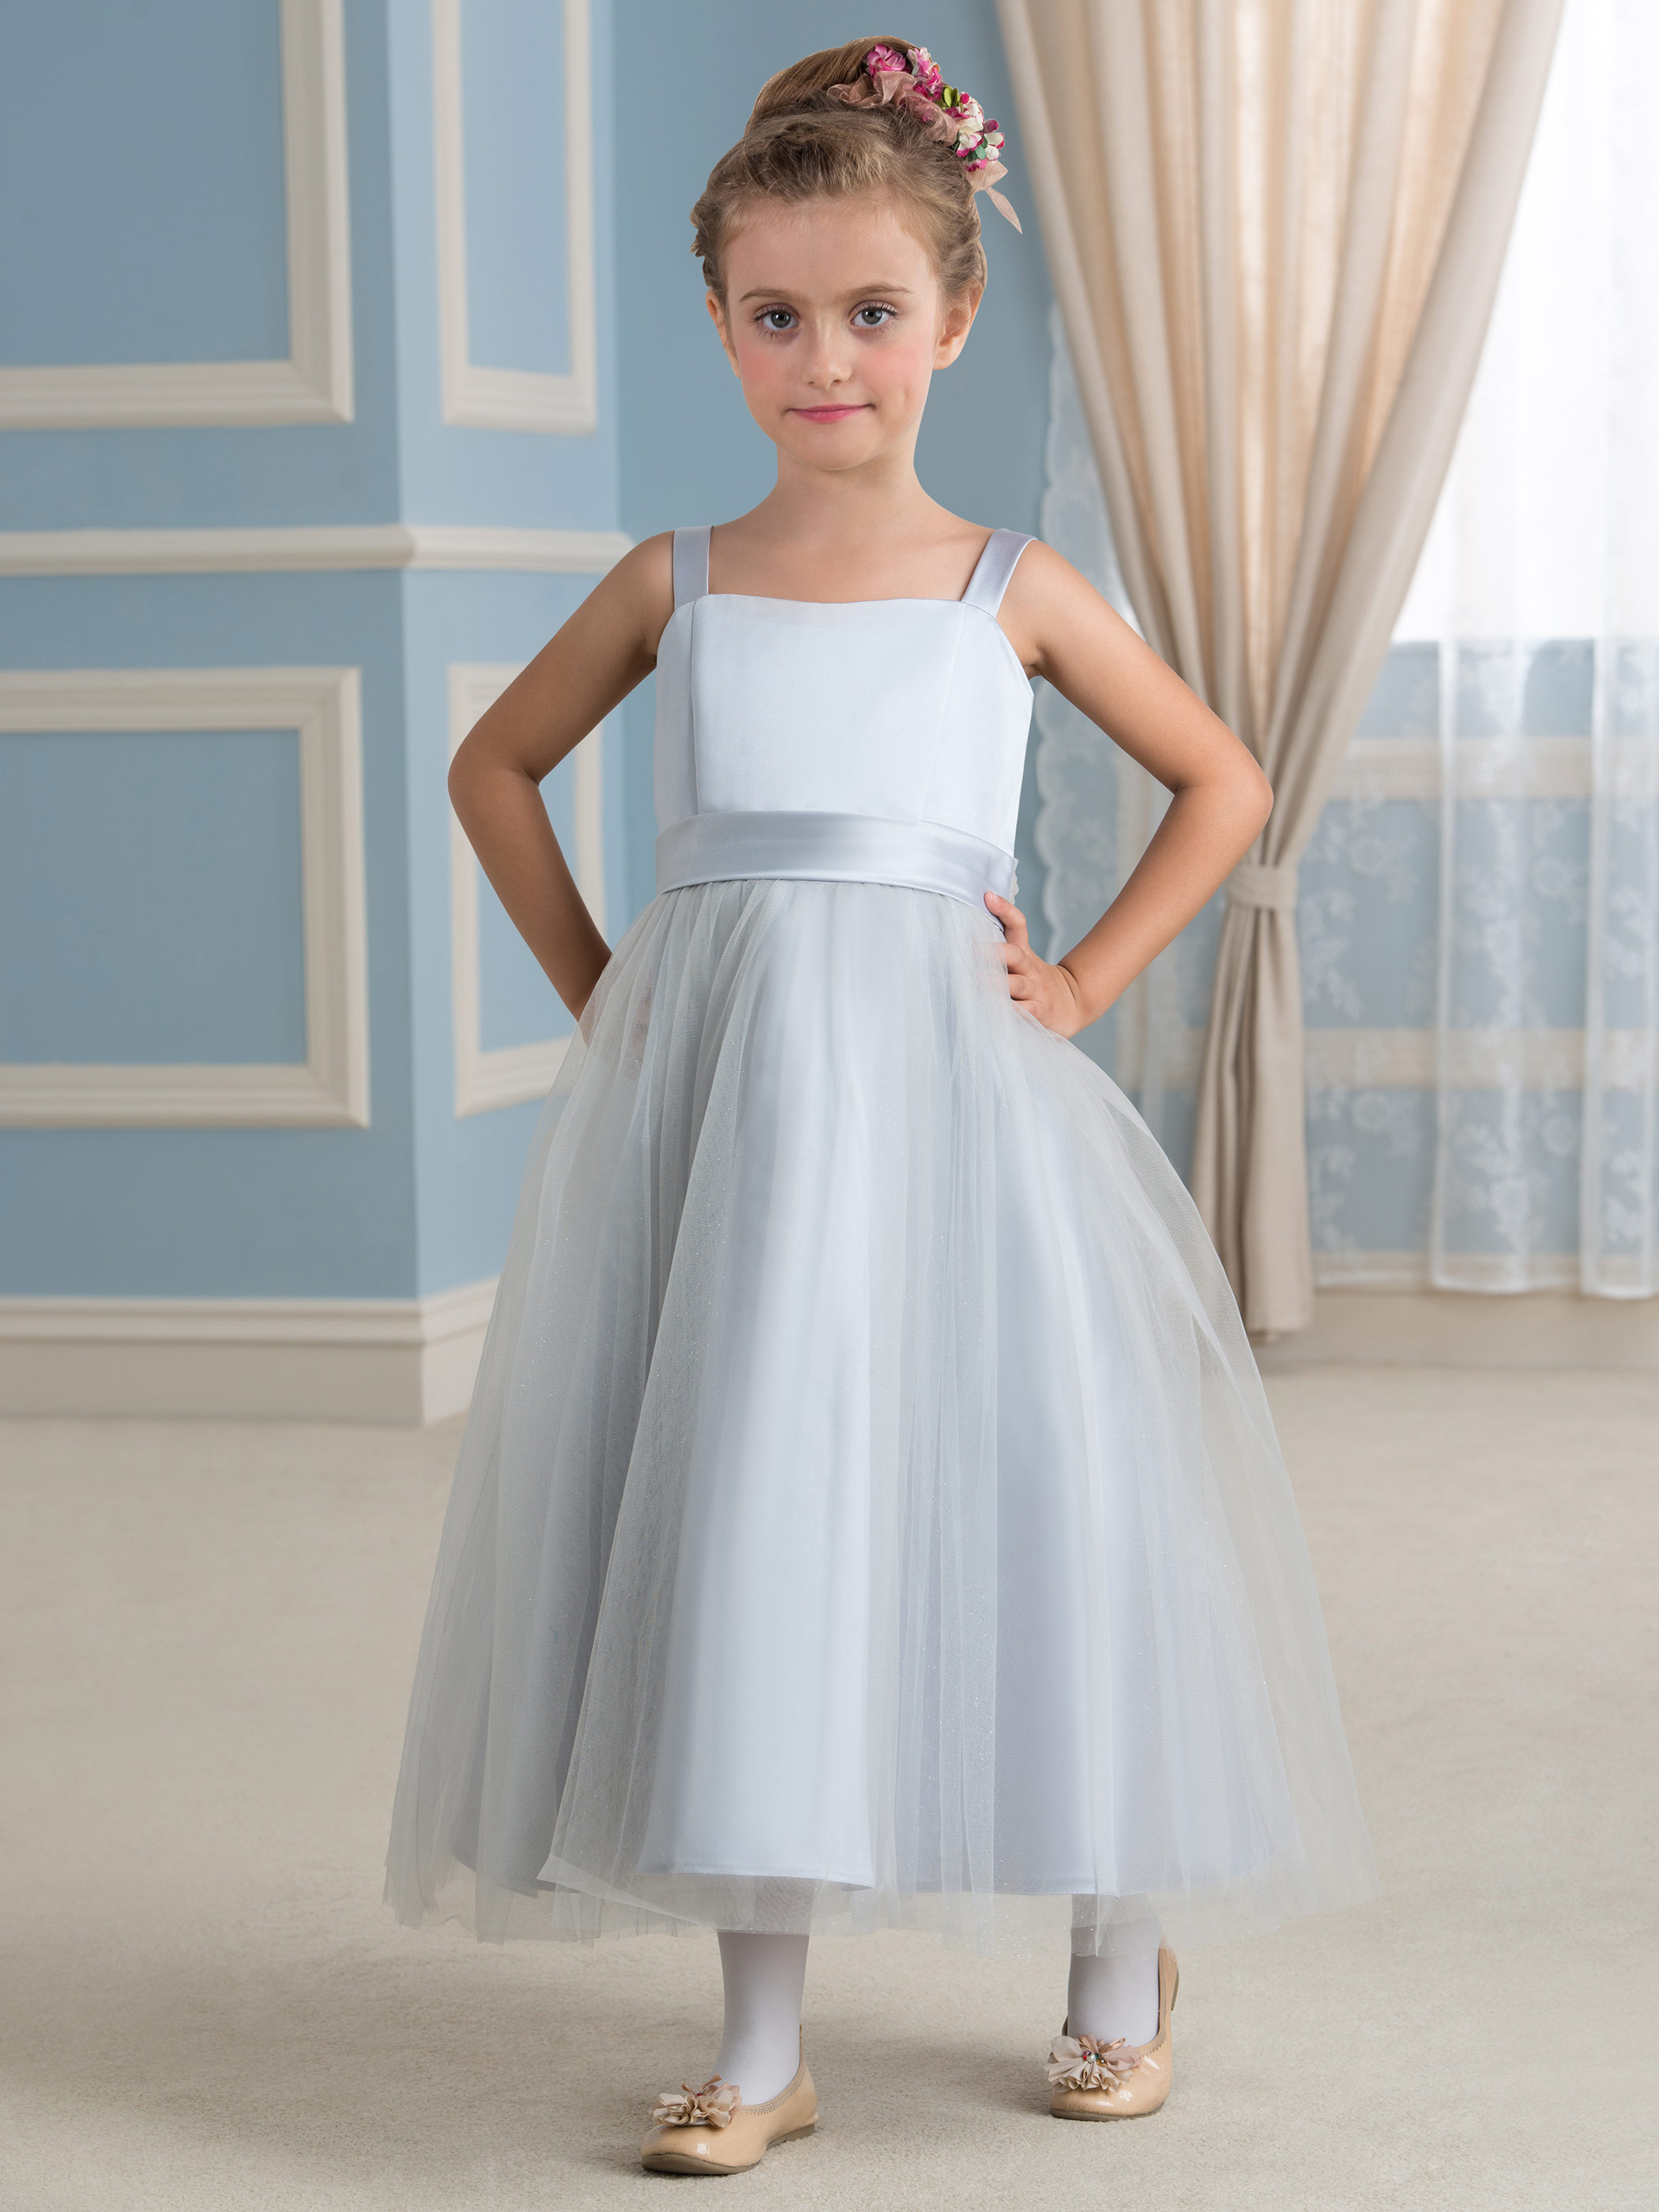 Cute little girl dress princess girl dress flower girl for Wedding dresses for young girls